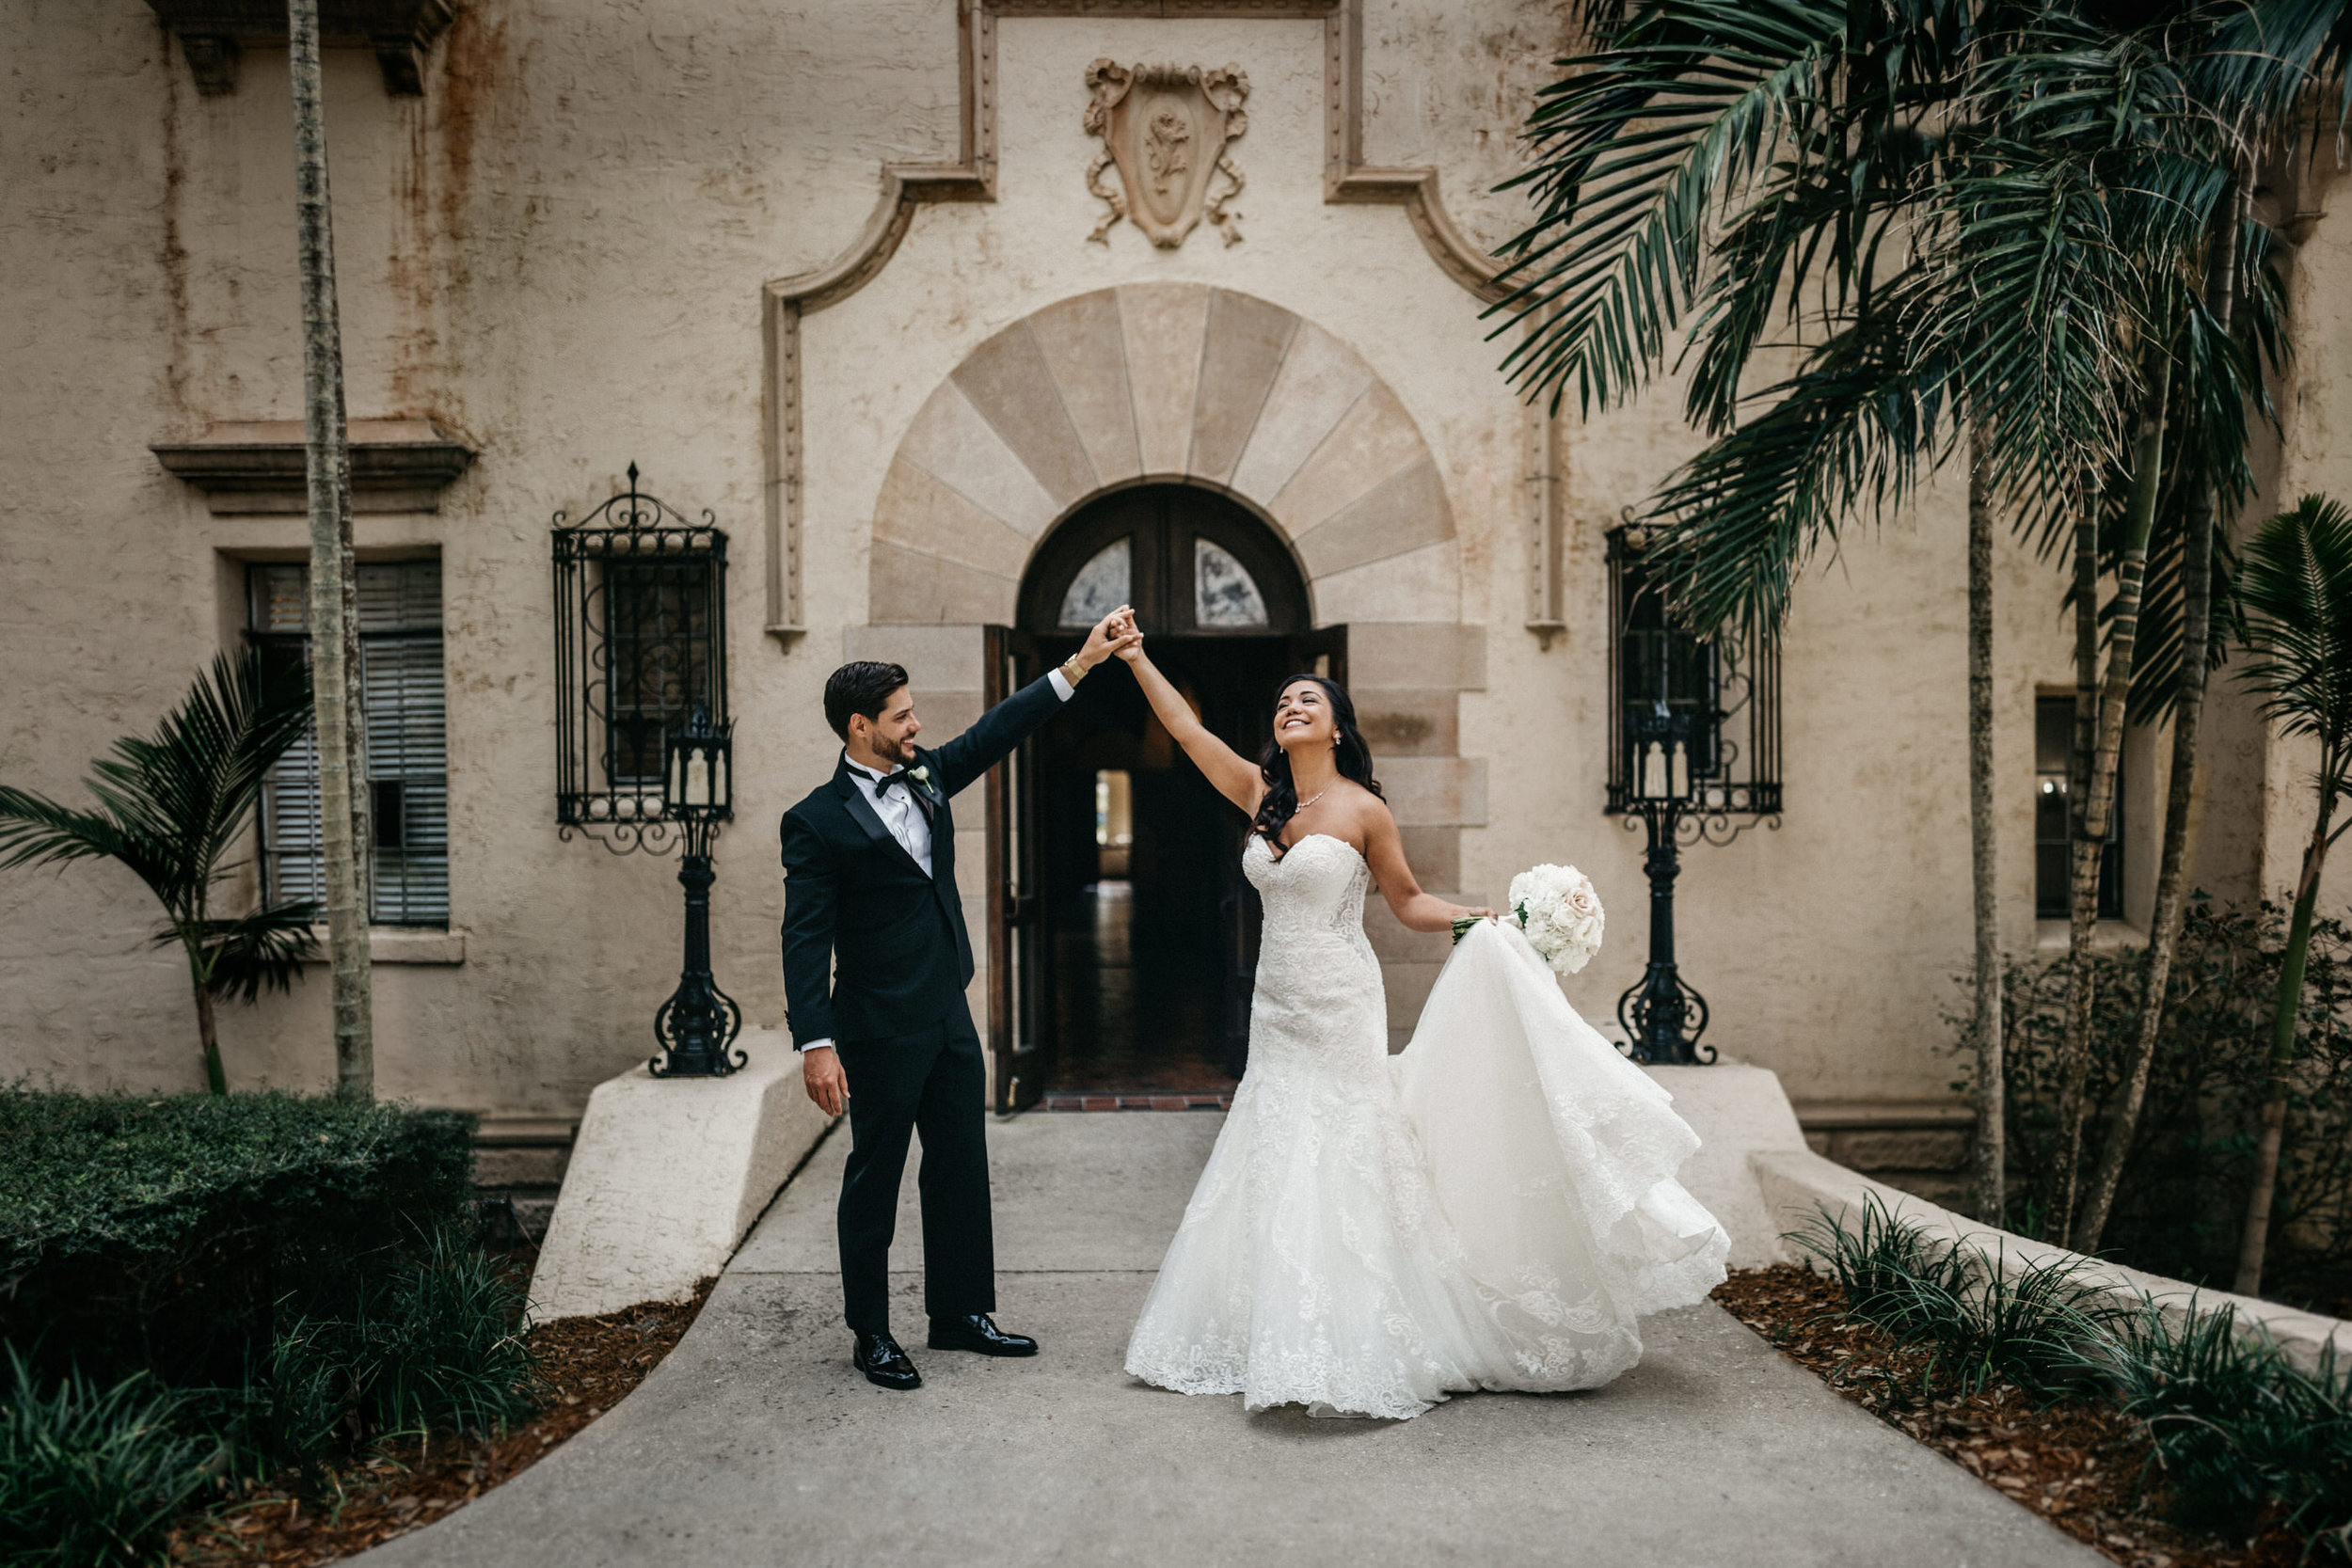 Floral Historic Powel Crosley Estate Wedding Sarasota- Anna + Matthew-49.jpg